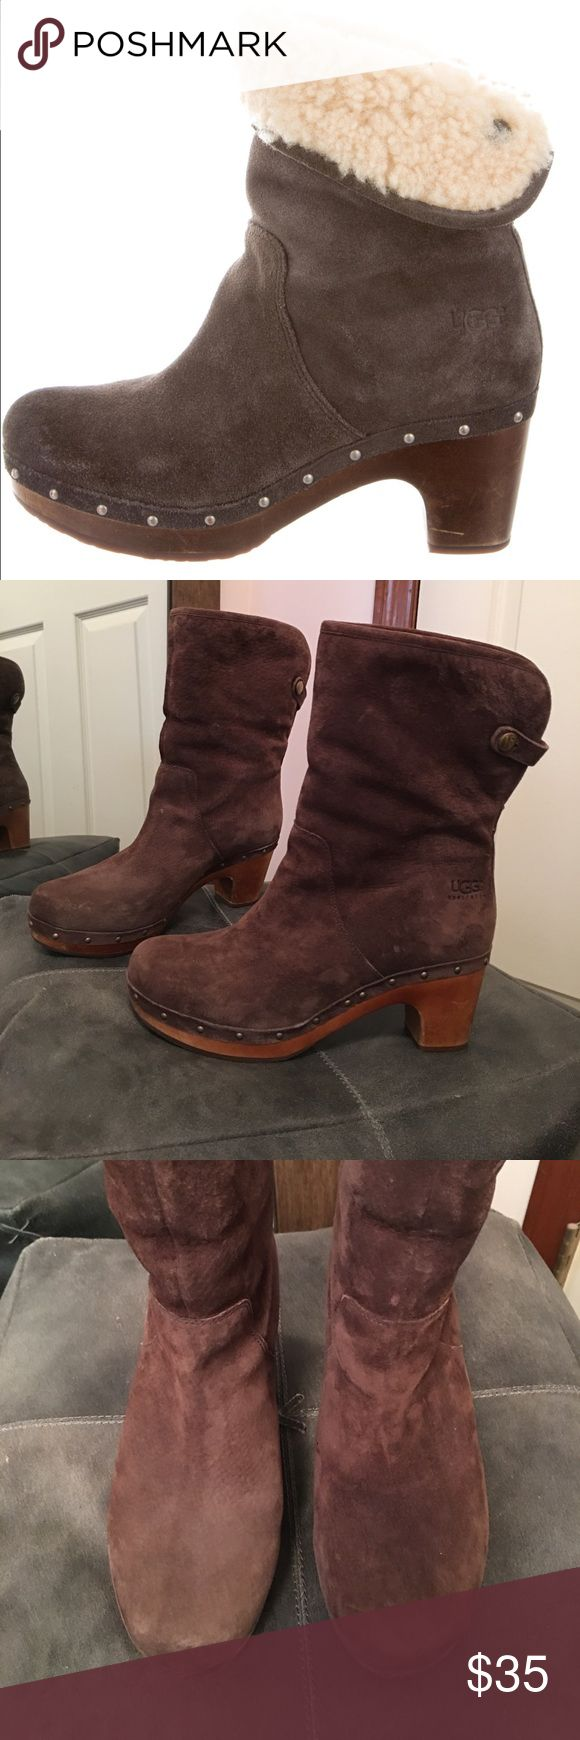 LAST!!!! ✨✨ Brown UGG Lynnea boot In EUC Lynnea ugg boot. Size 8 few scuffs here and there on the heel nothing major. Heel height 3 inches. Genuine leather and sheepskin. UGG Shoes Heeled Boots